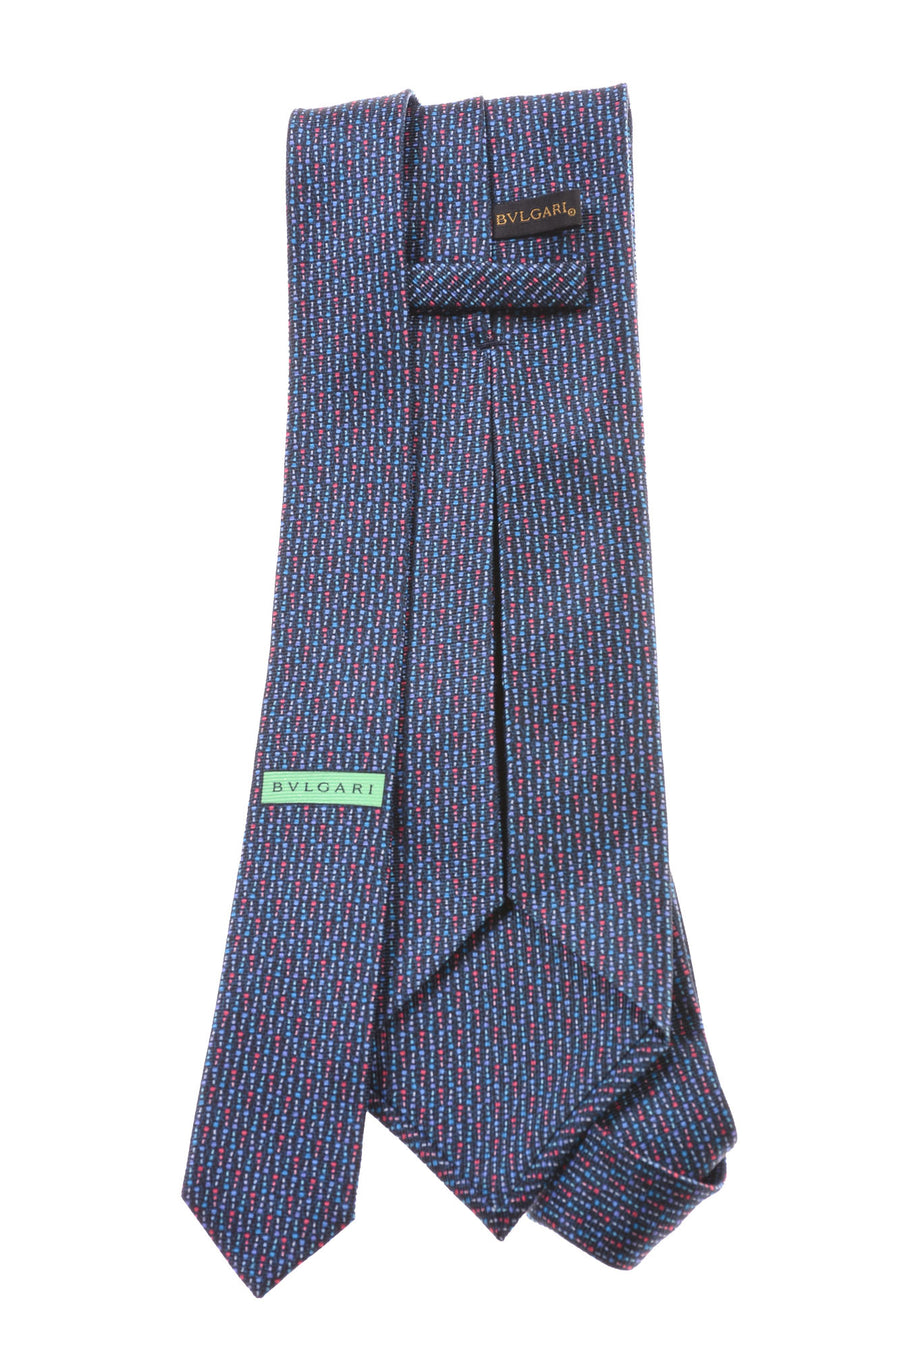 NEW DKNY Men's Tie N/A Blue